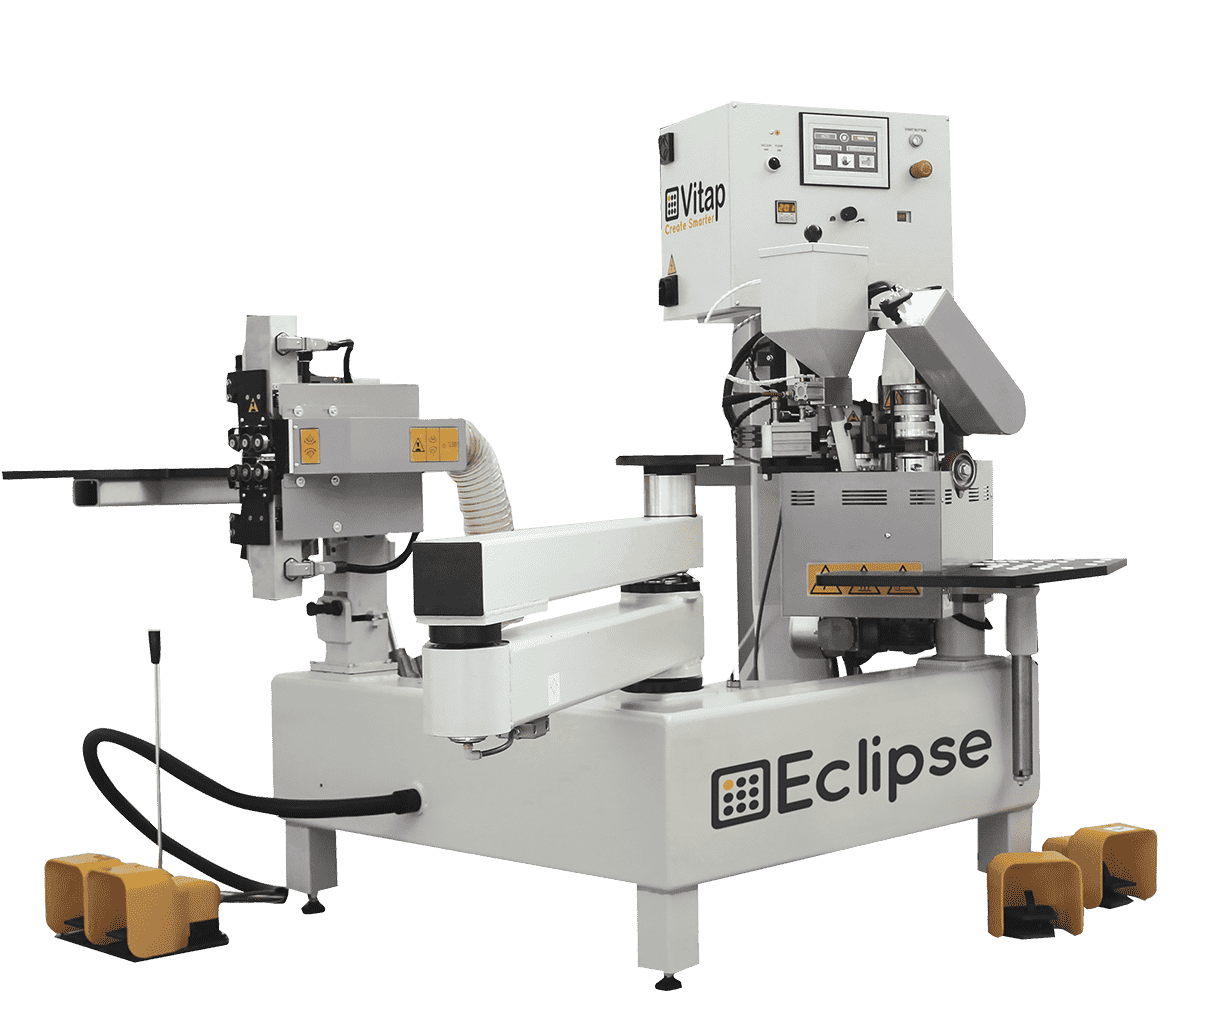 Vitap - Semiautomatics for shaped or straightened pieces